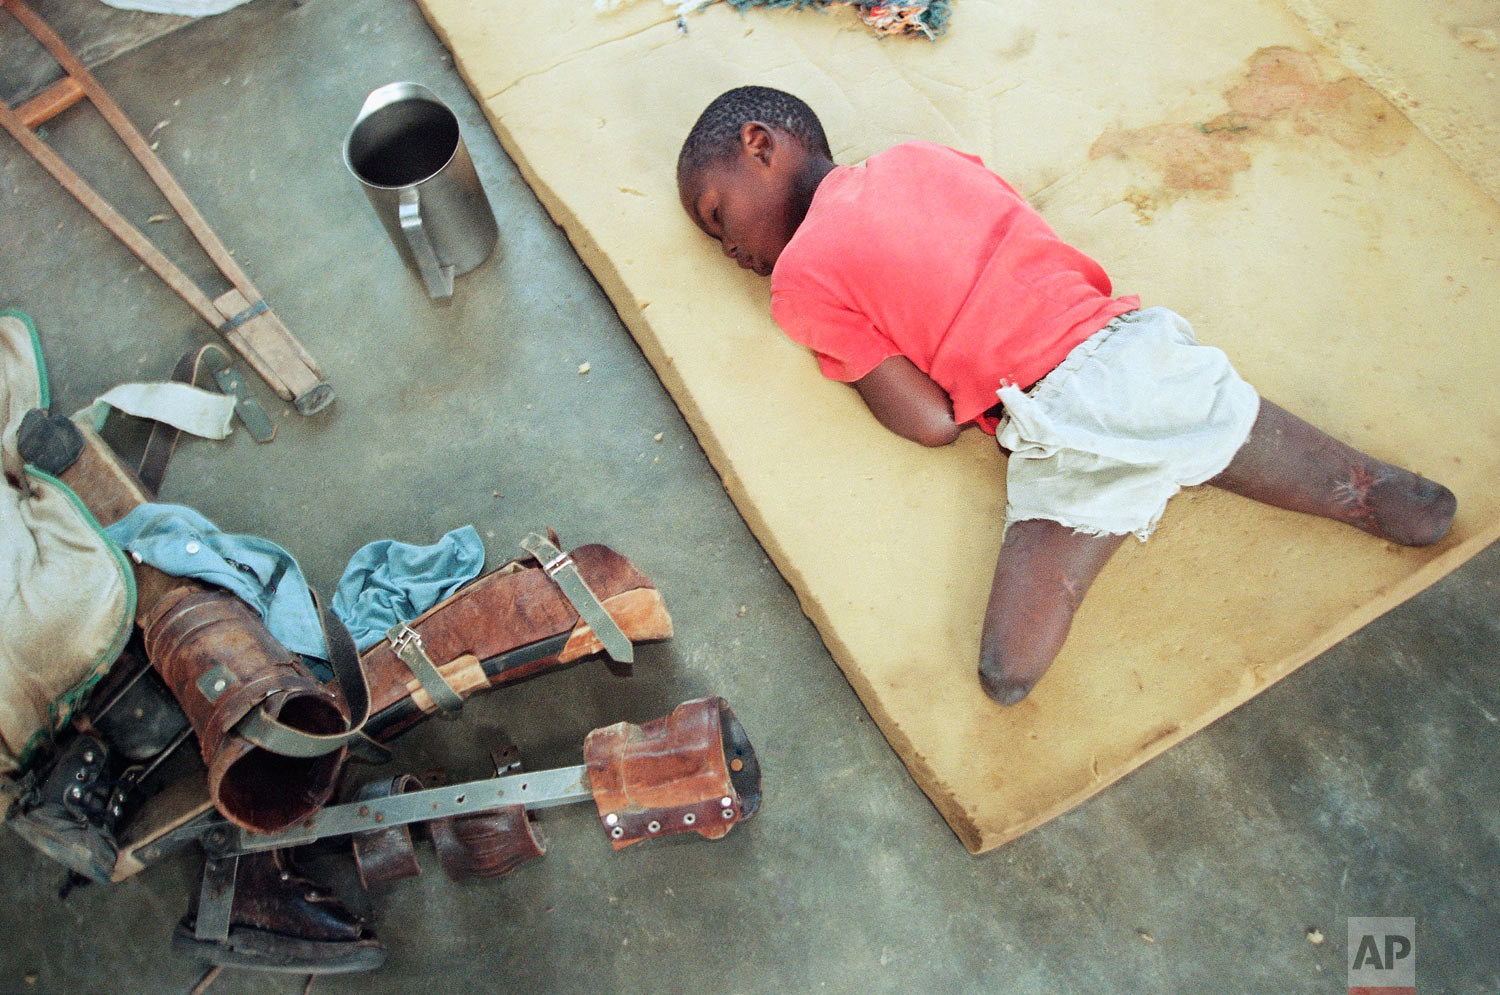 A young orphan, his legs amputated below the knee, rests on a foam cushion near his artificial limbs at an orphanage in Nyanza, near the capital Kigali, Rwanda, June 9, 1994. (AP Photo/Jean-Marc Bouju)